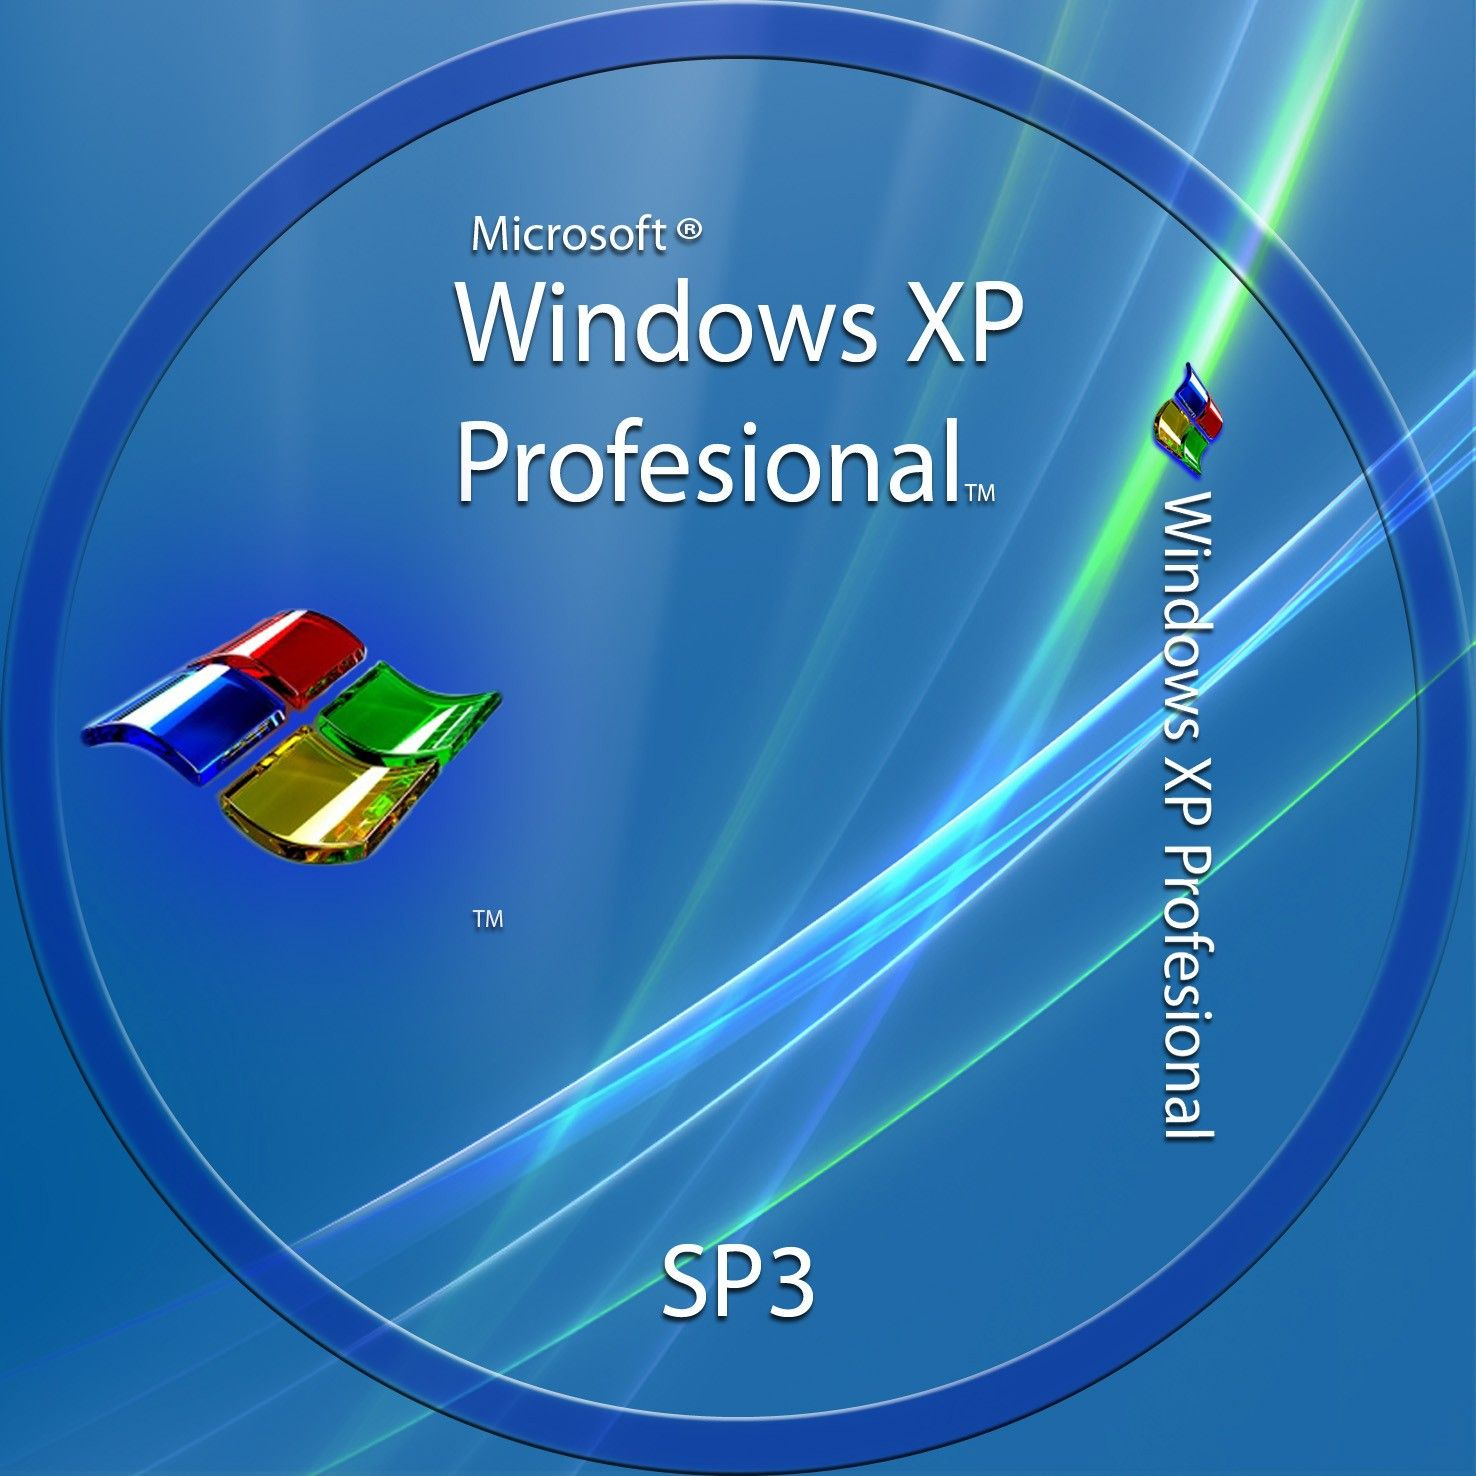 Windows xp Service Pack 3 Iso 9660 cd Image File Windows xp Service Pack 3 xp